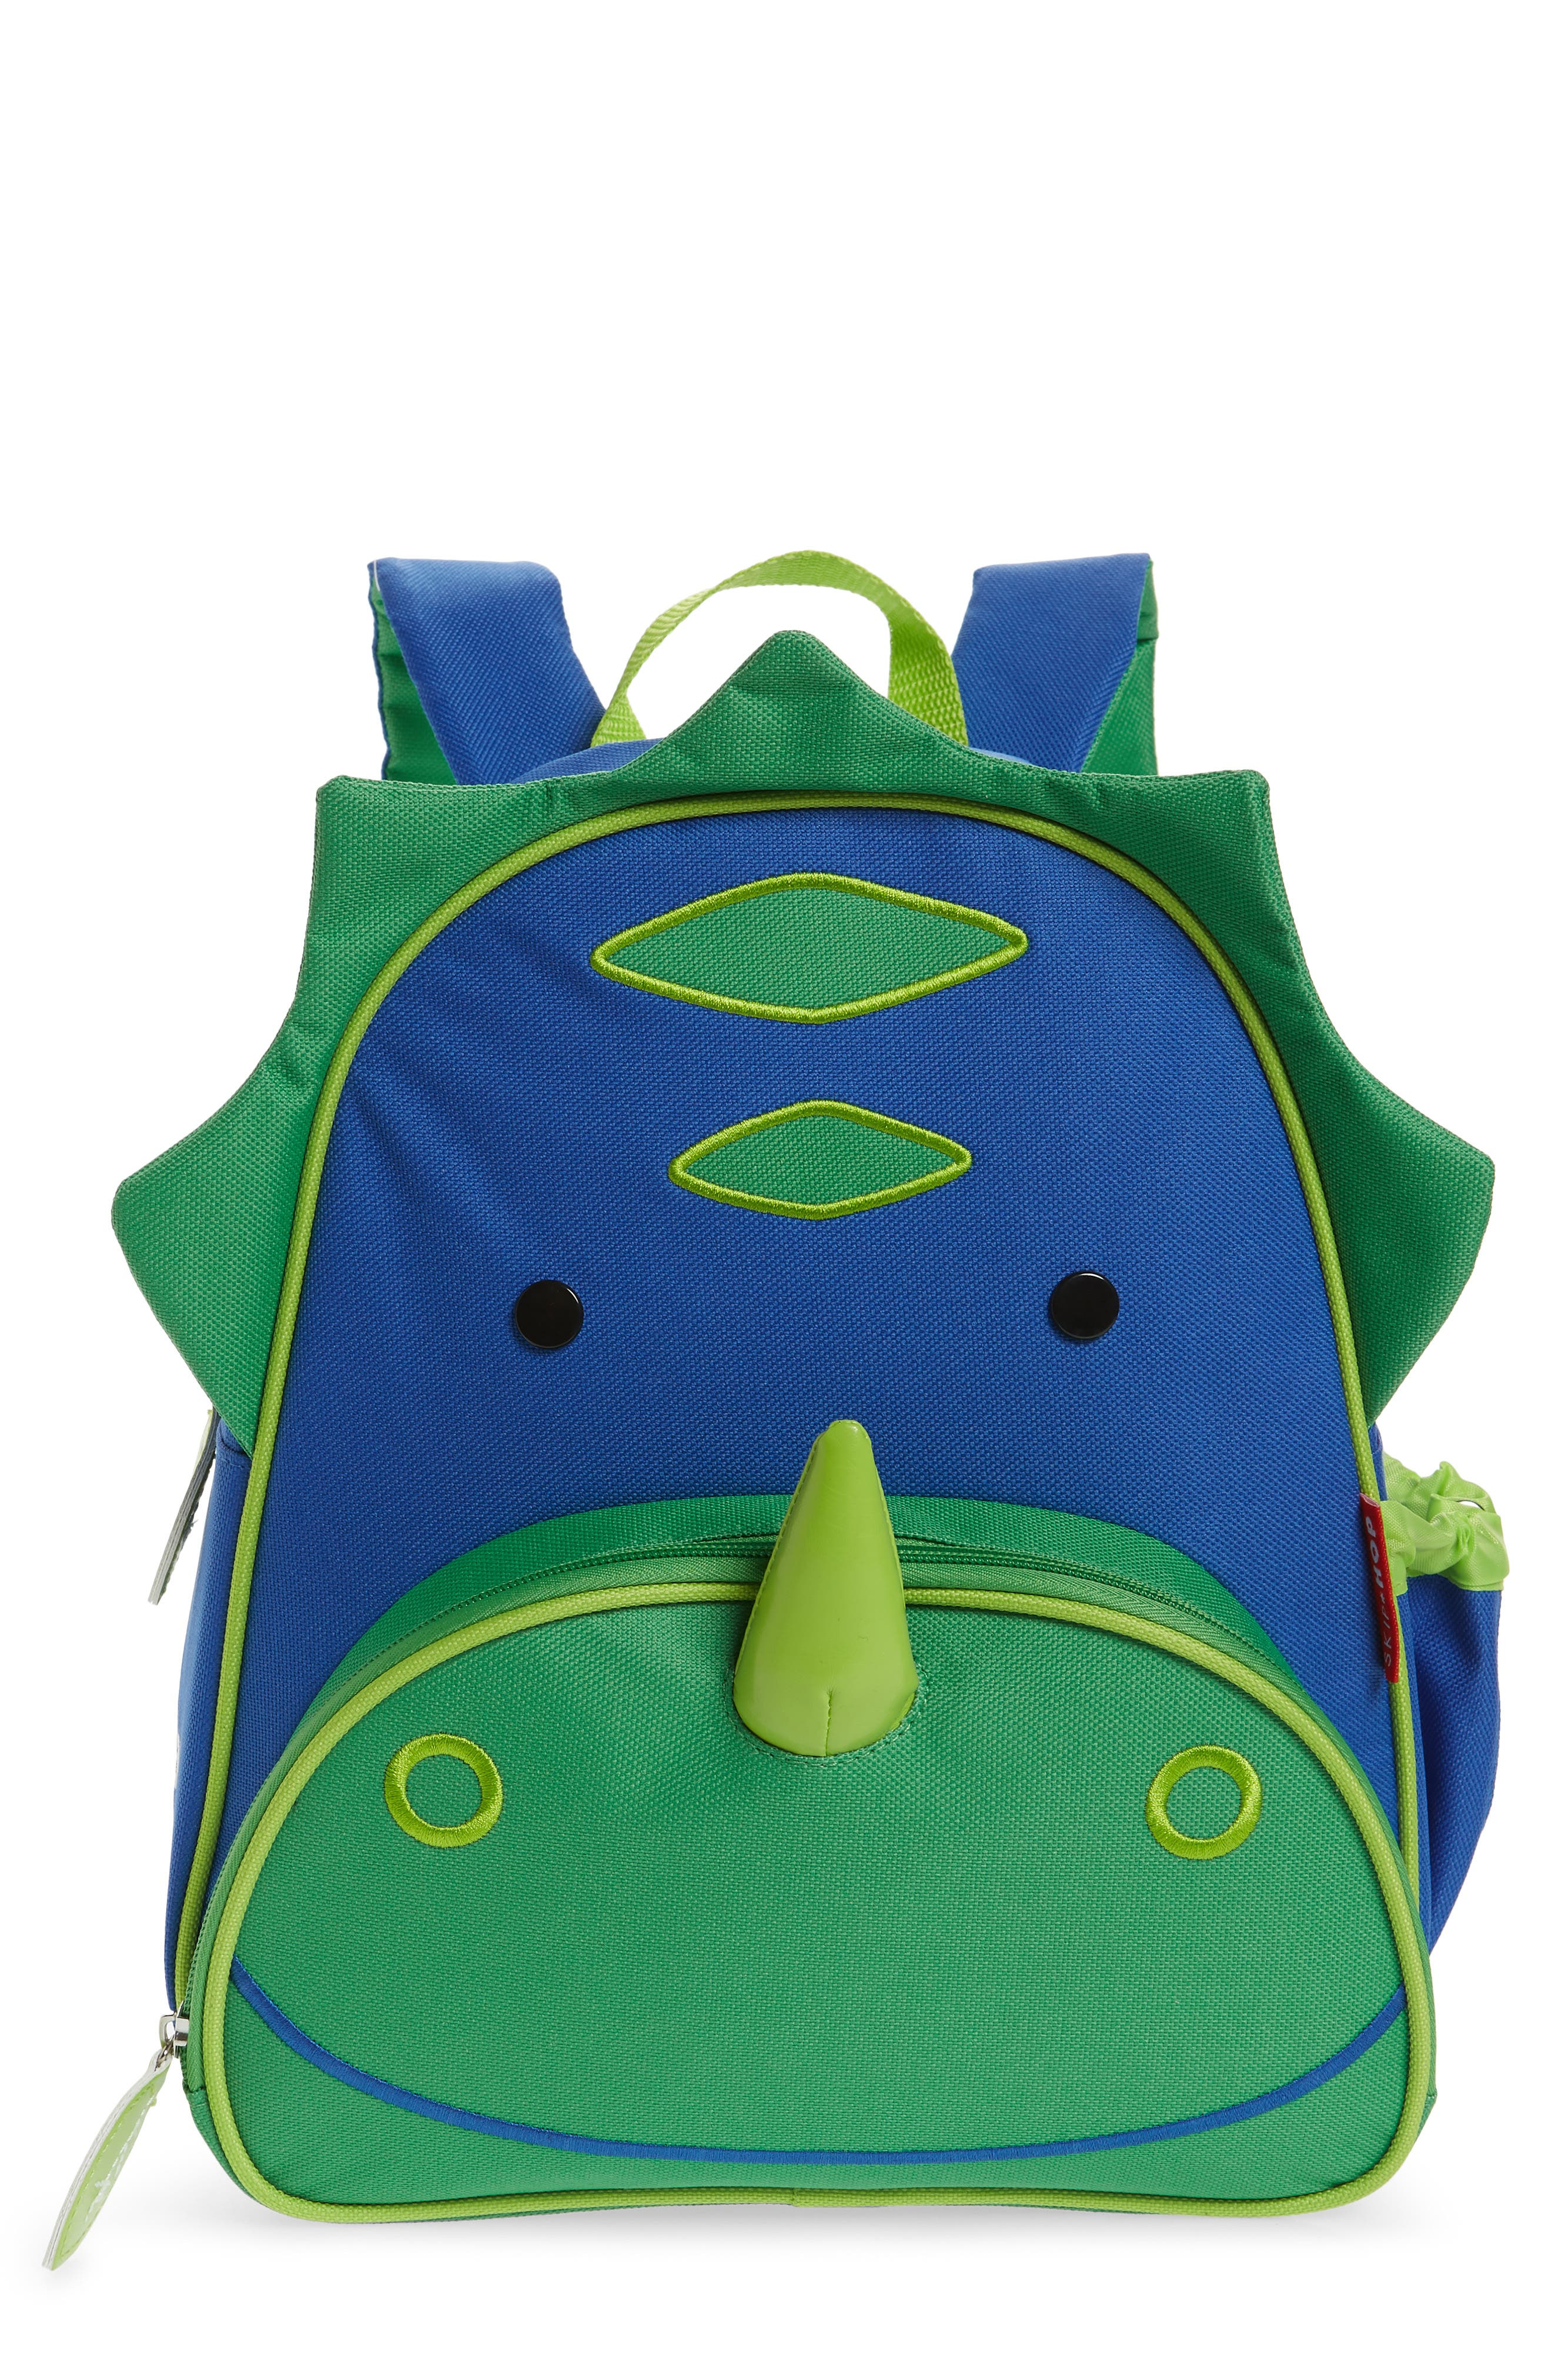 Zoo Pack Backpack,                             Alternate thumbnail 26, color,